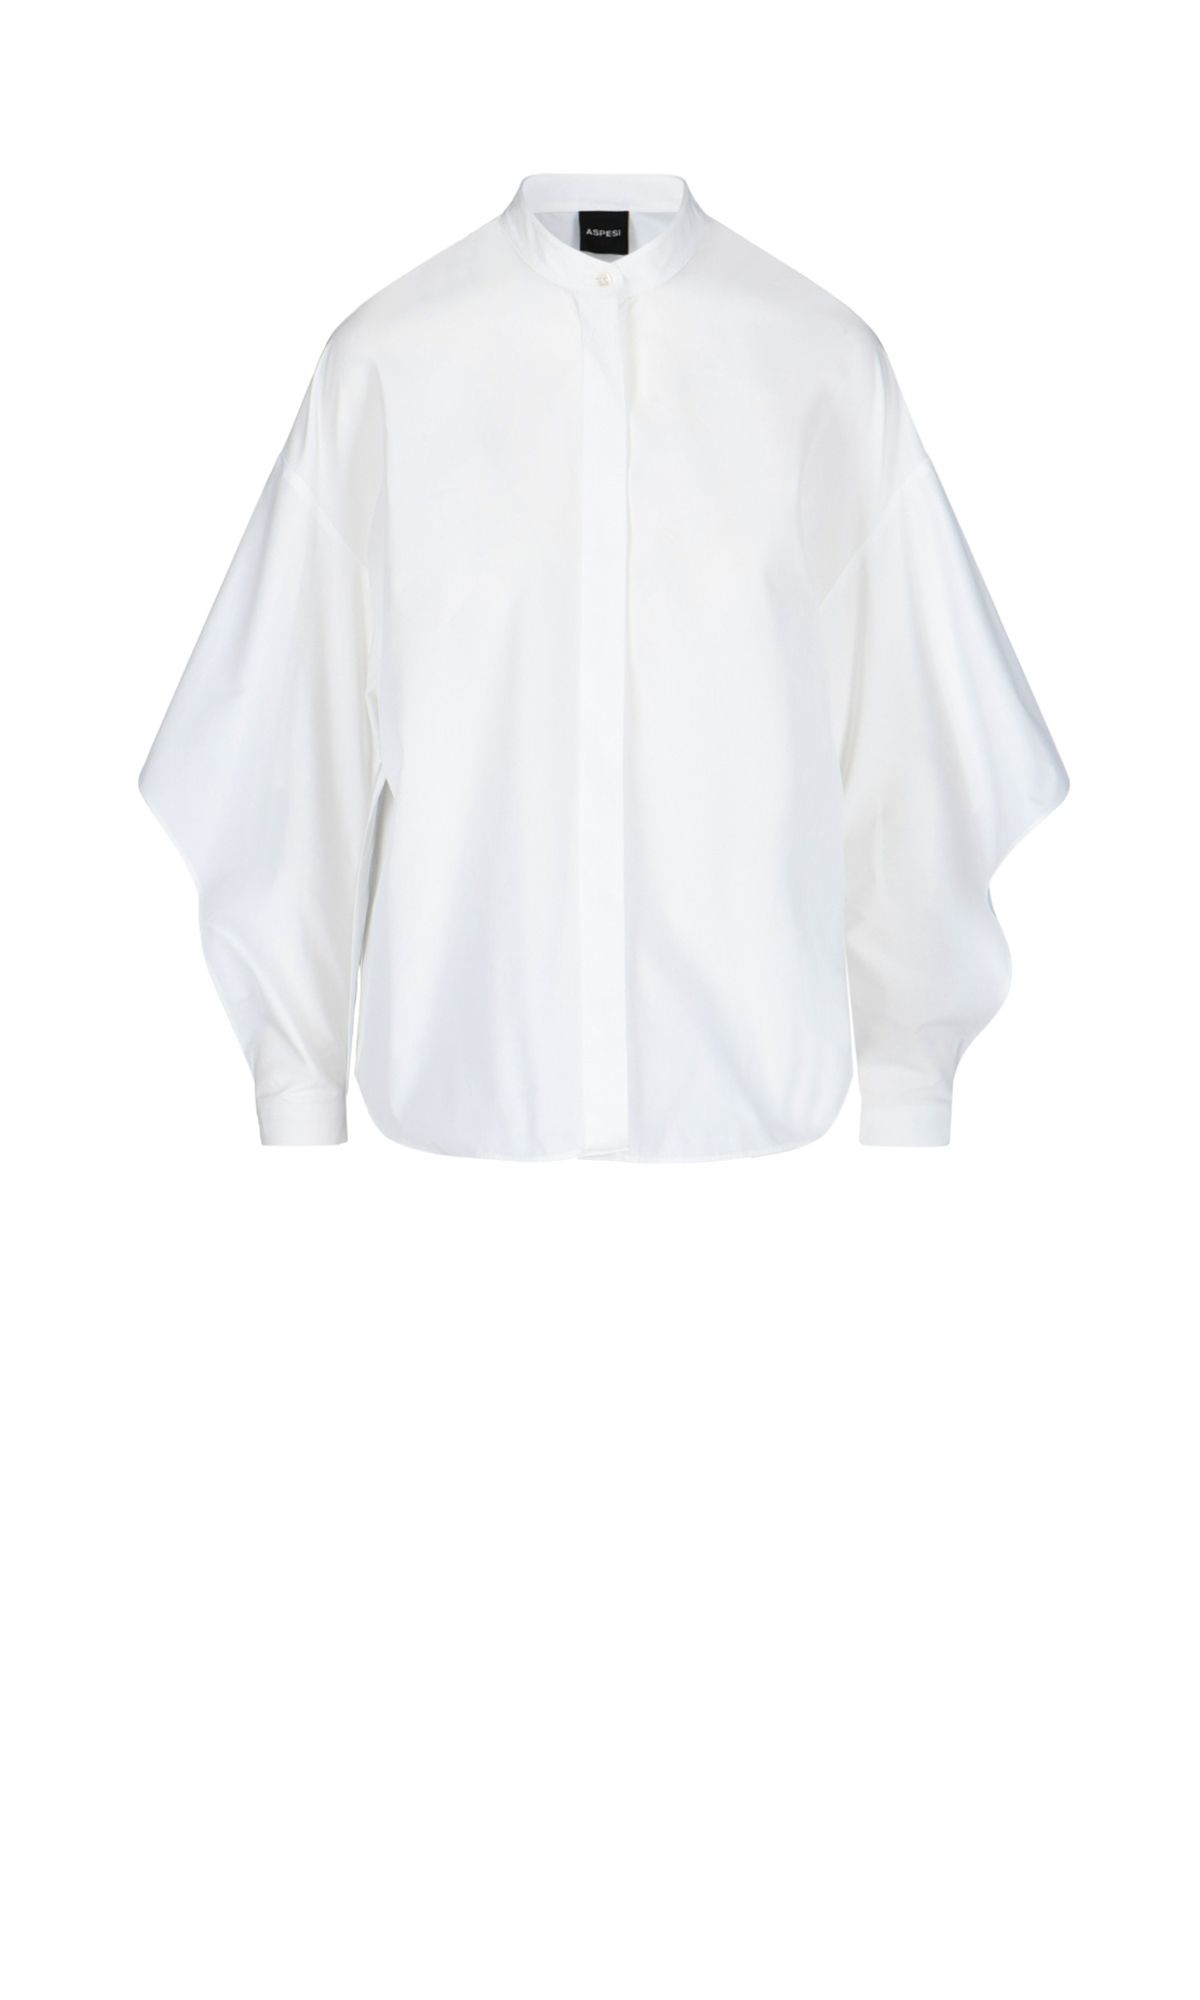 ASPESI ASPESI WOMEN'S WHITE COTTON SHIRT